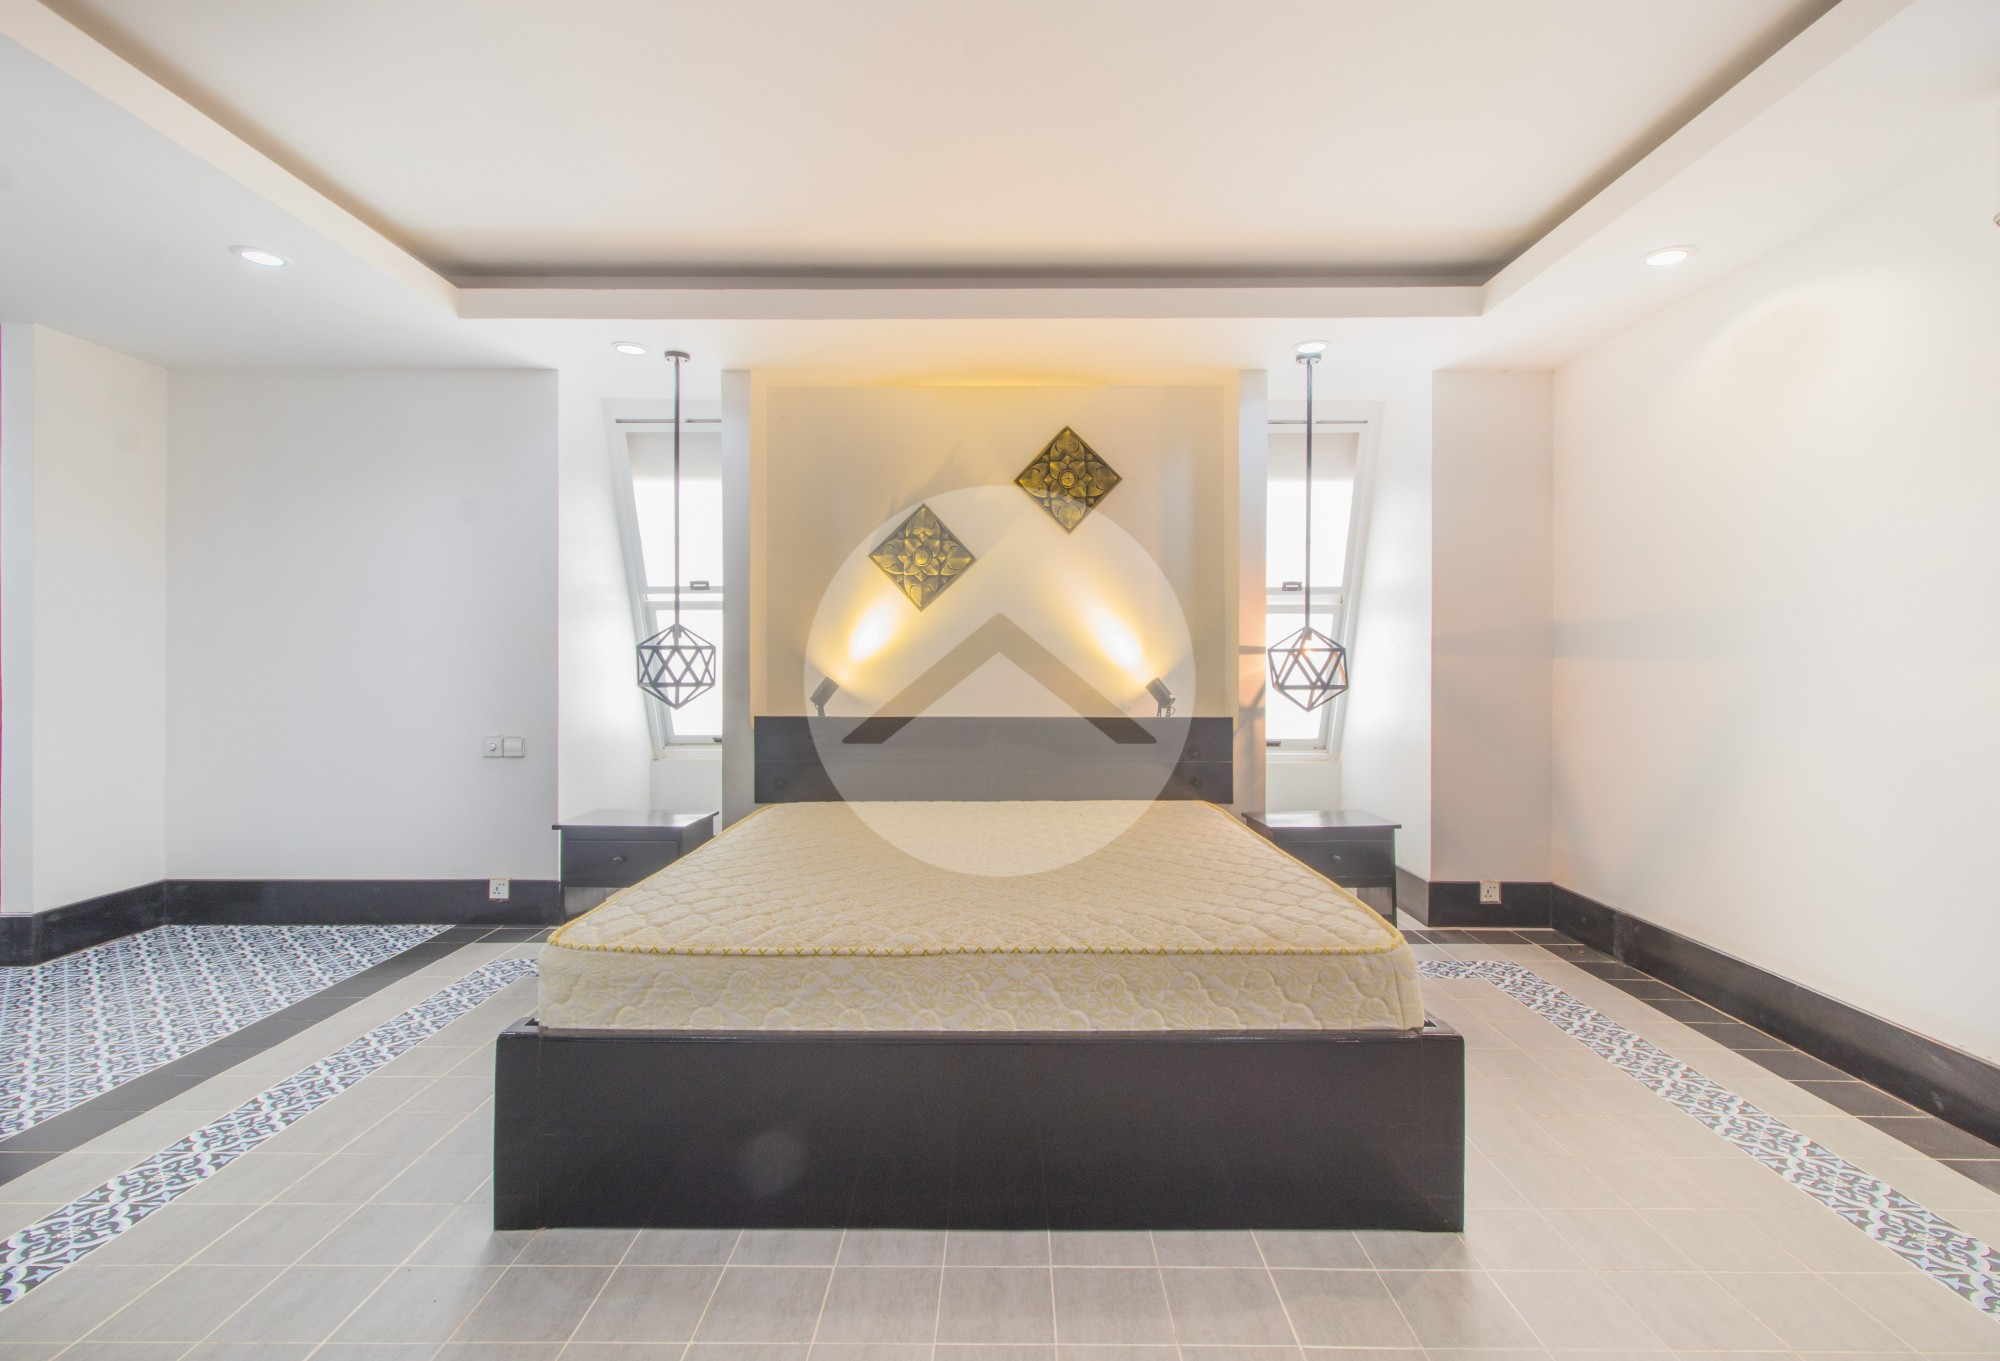 1 Bedroom Apartment For Rent - National Road 6, Siem Reap